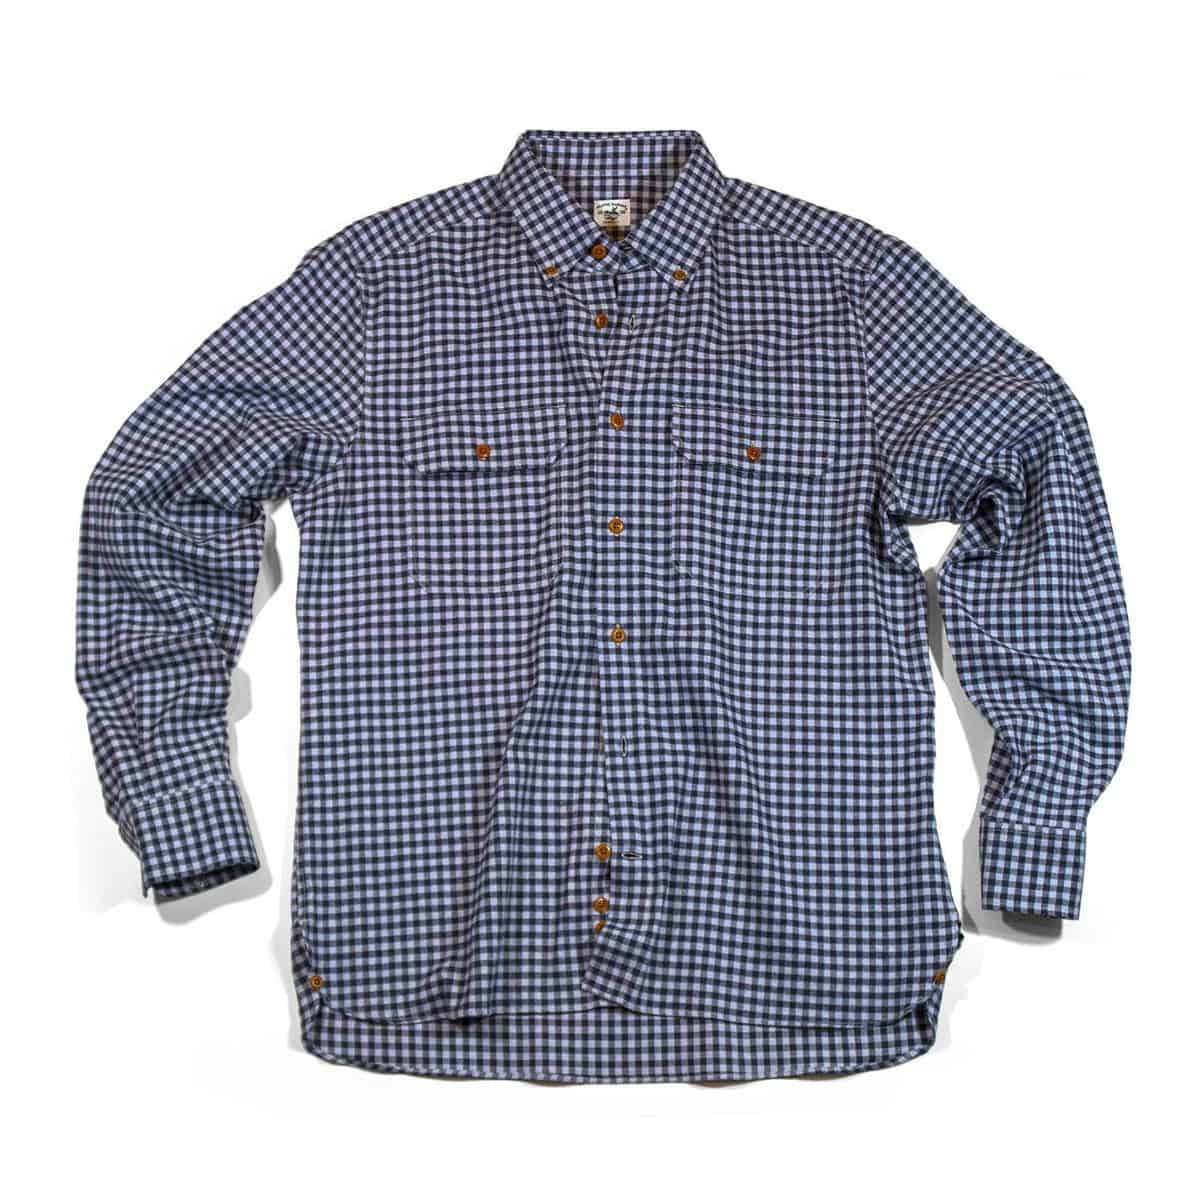 Buy The Bayman's Flannel Button-Down Collar Shirt - Blue Check